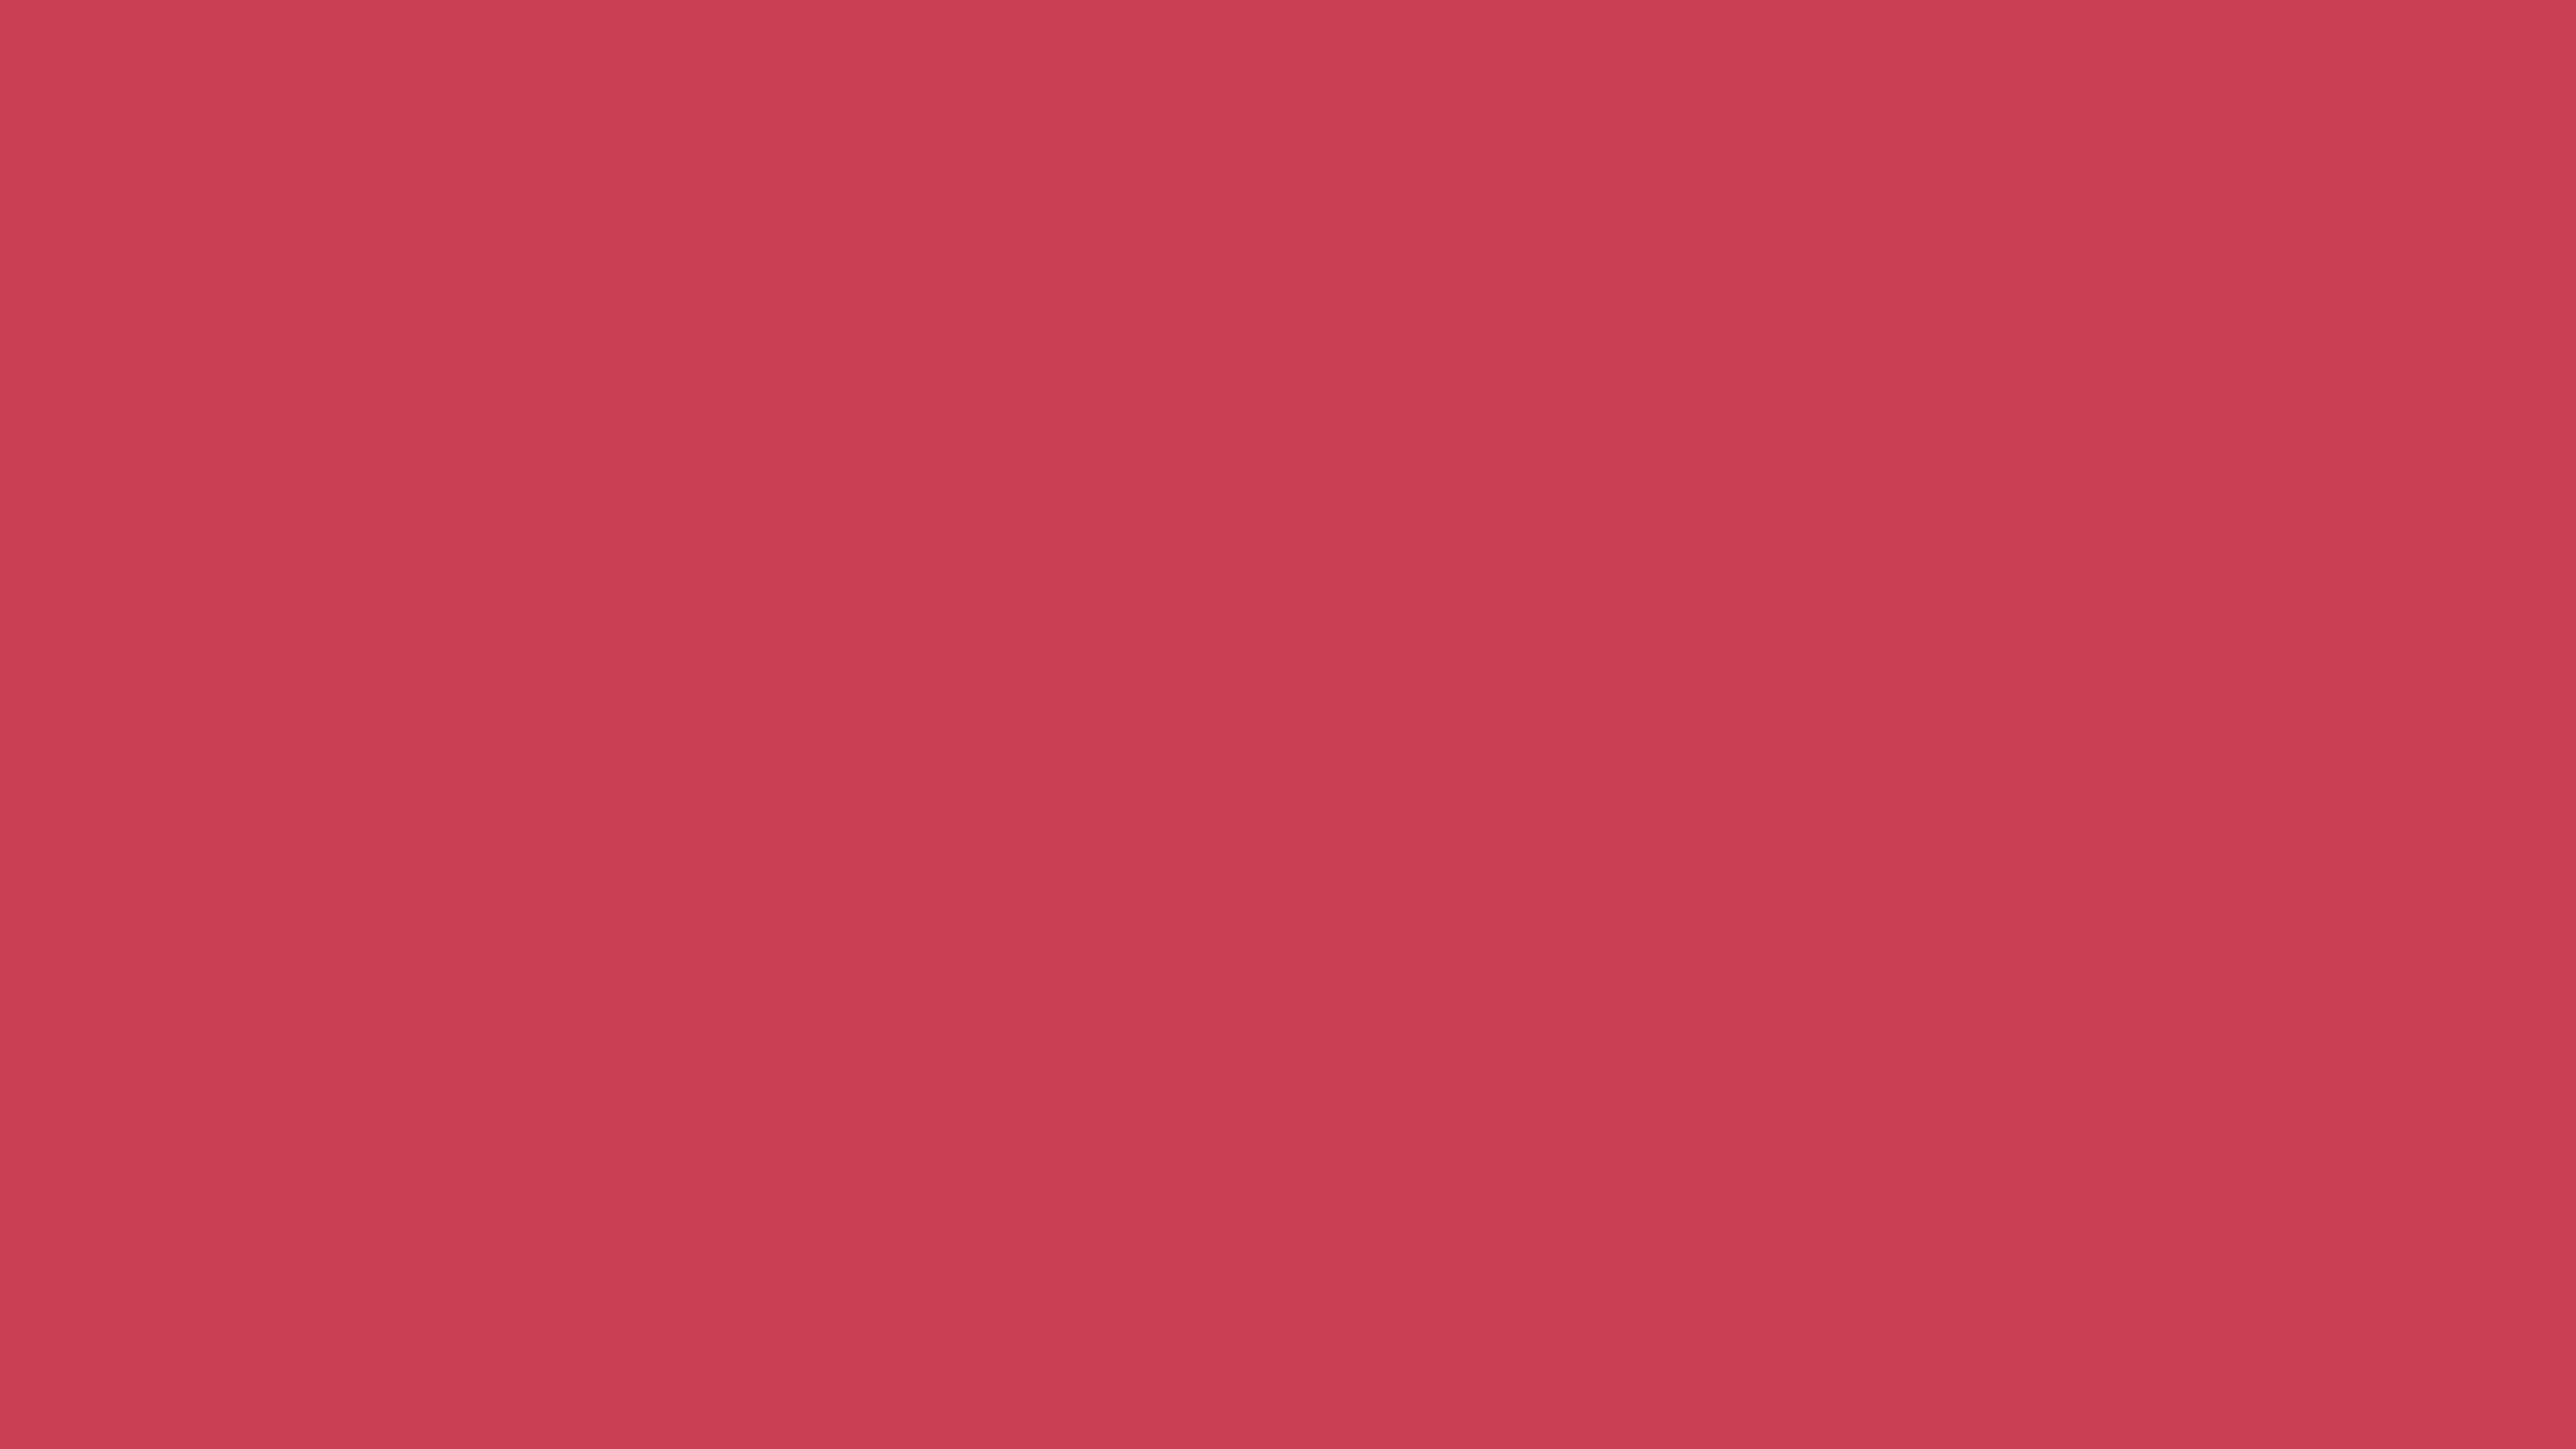 5120x2880 Brick Red Solid Color Background